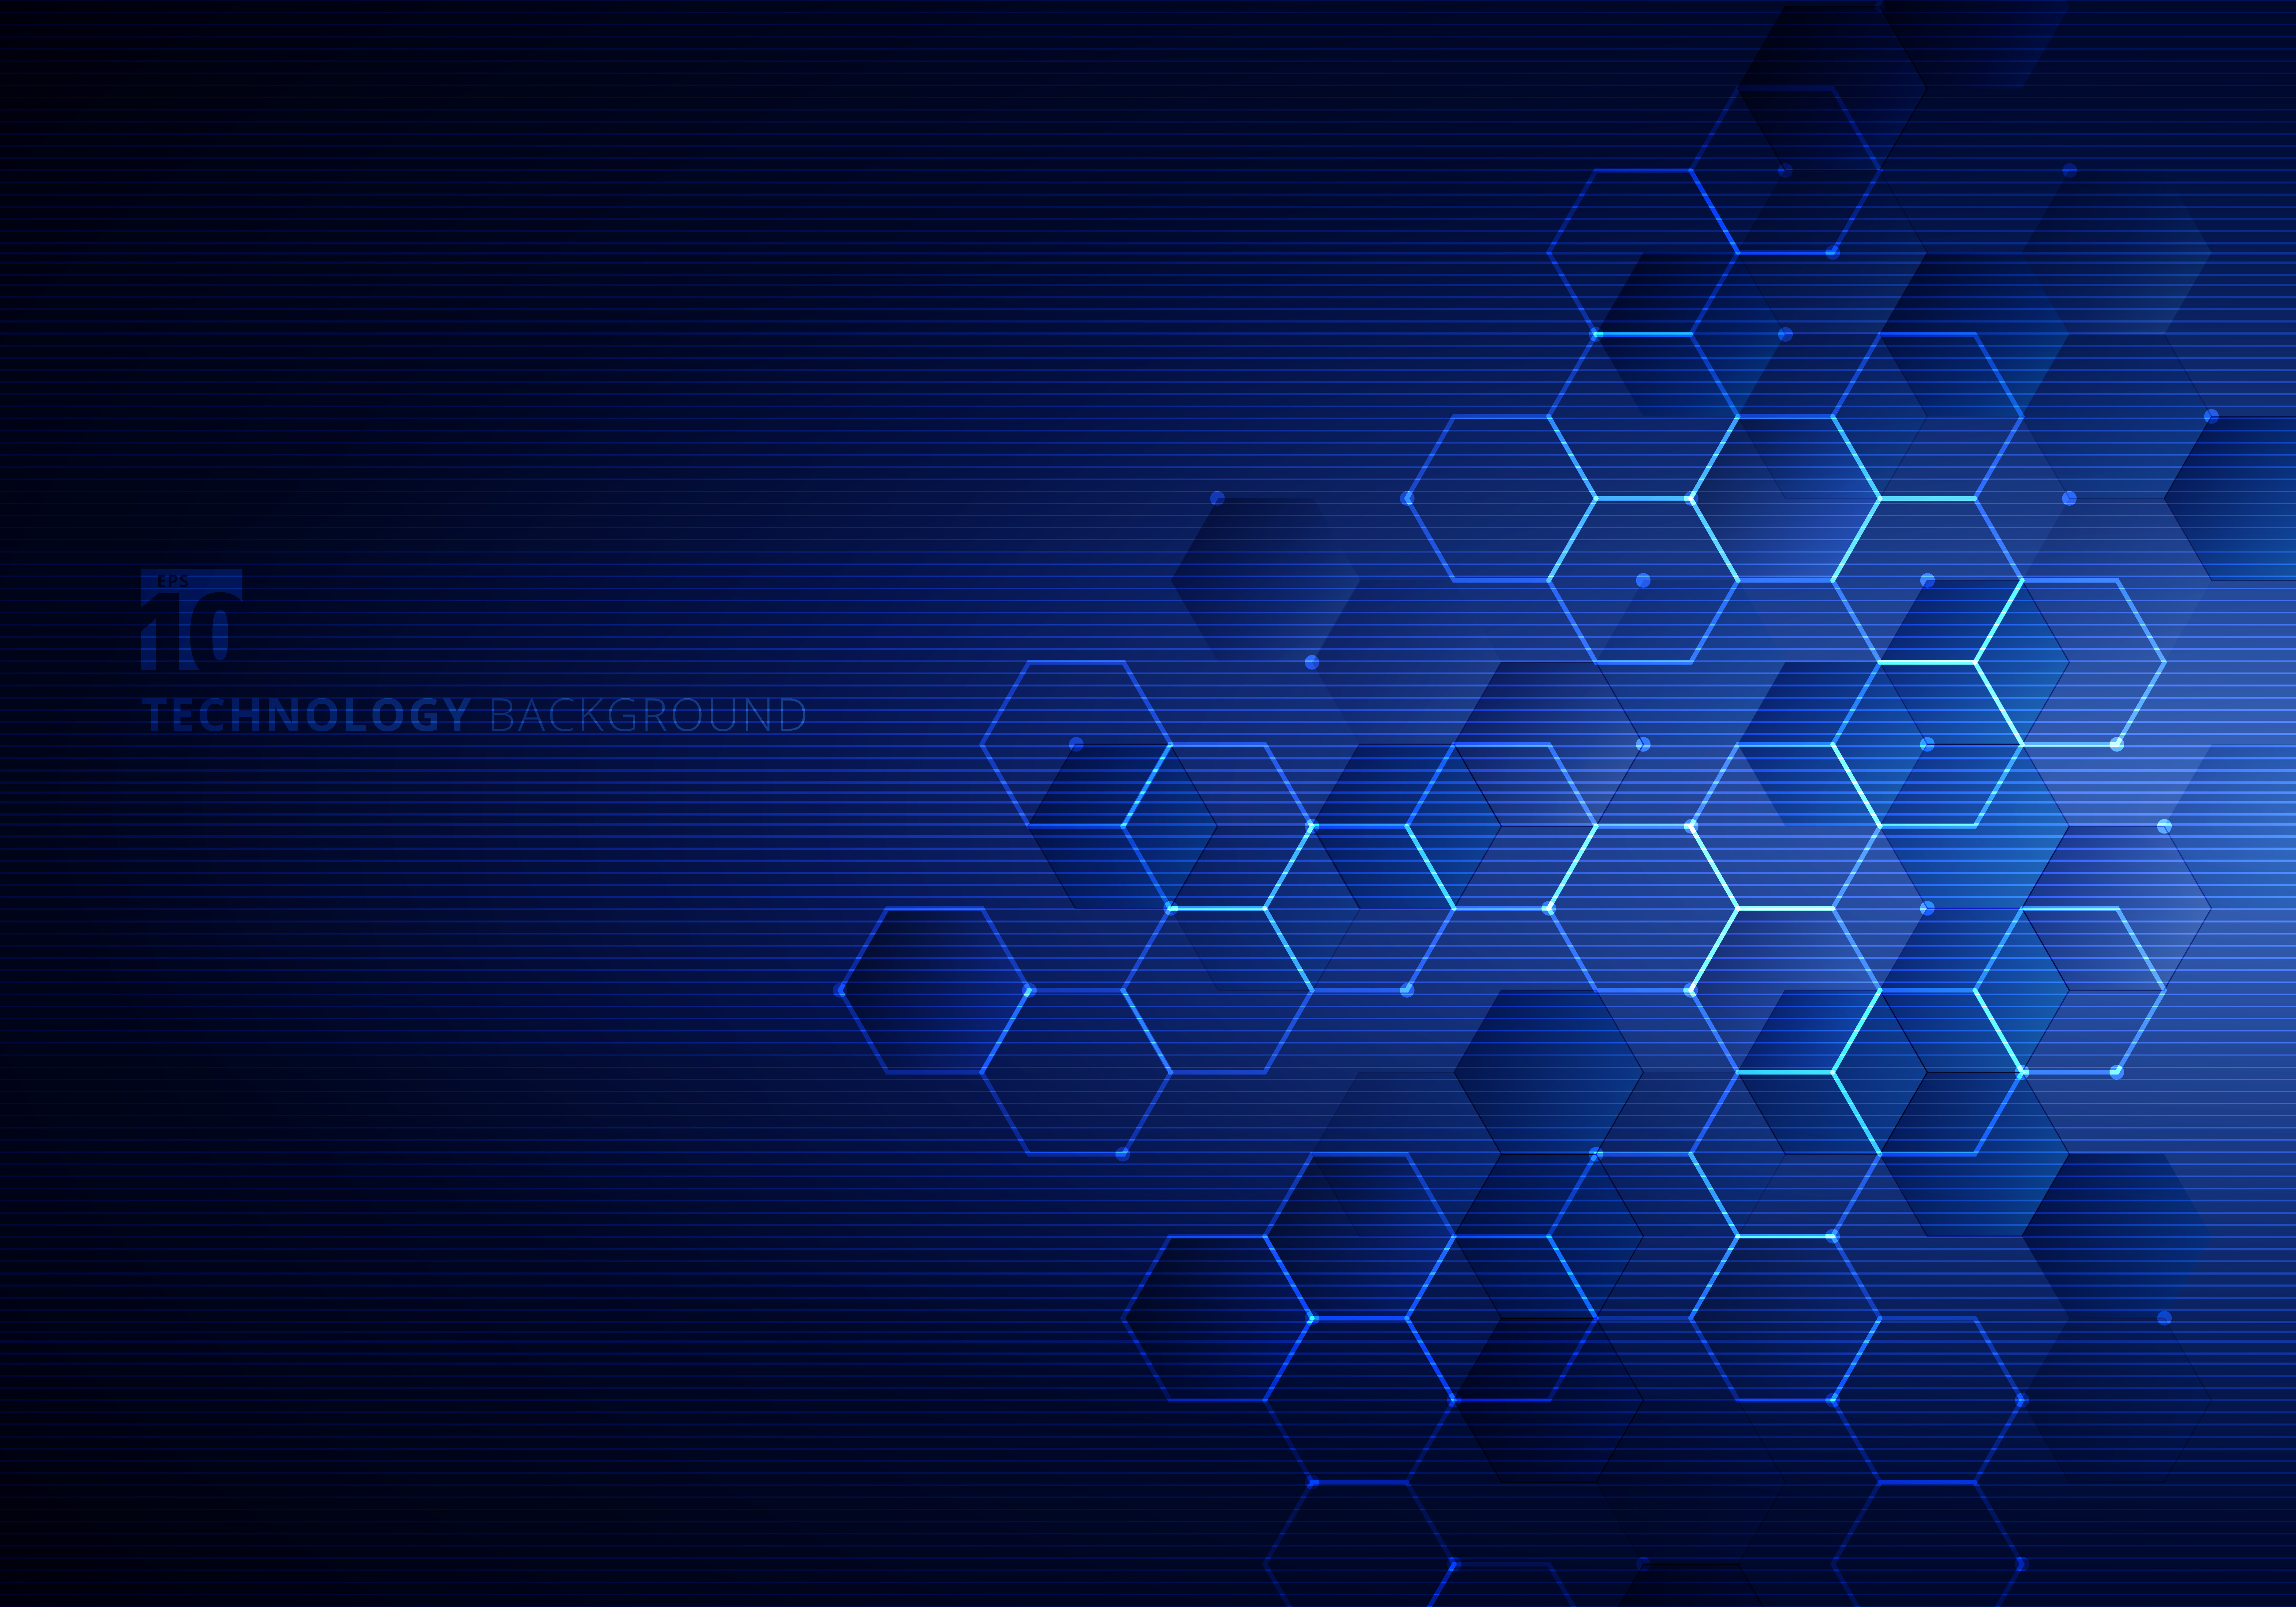 Abstract Blue Hexagons With Nodes Digital Geometric And Lines And Dots Dark Blue Background With Horizontal Light Technology Connection Concept Download Free Vectors Clipart Graphics Vector Art